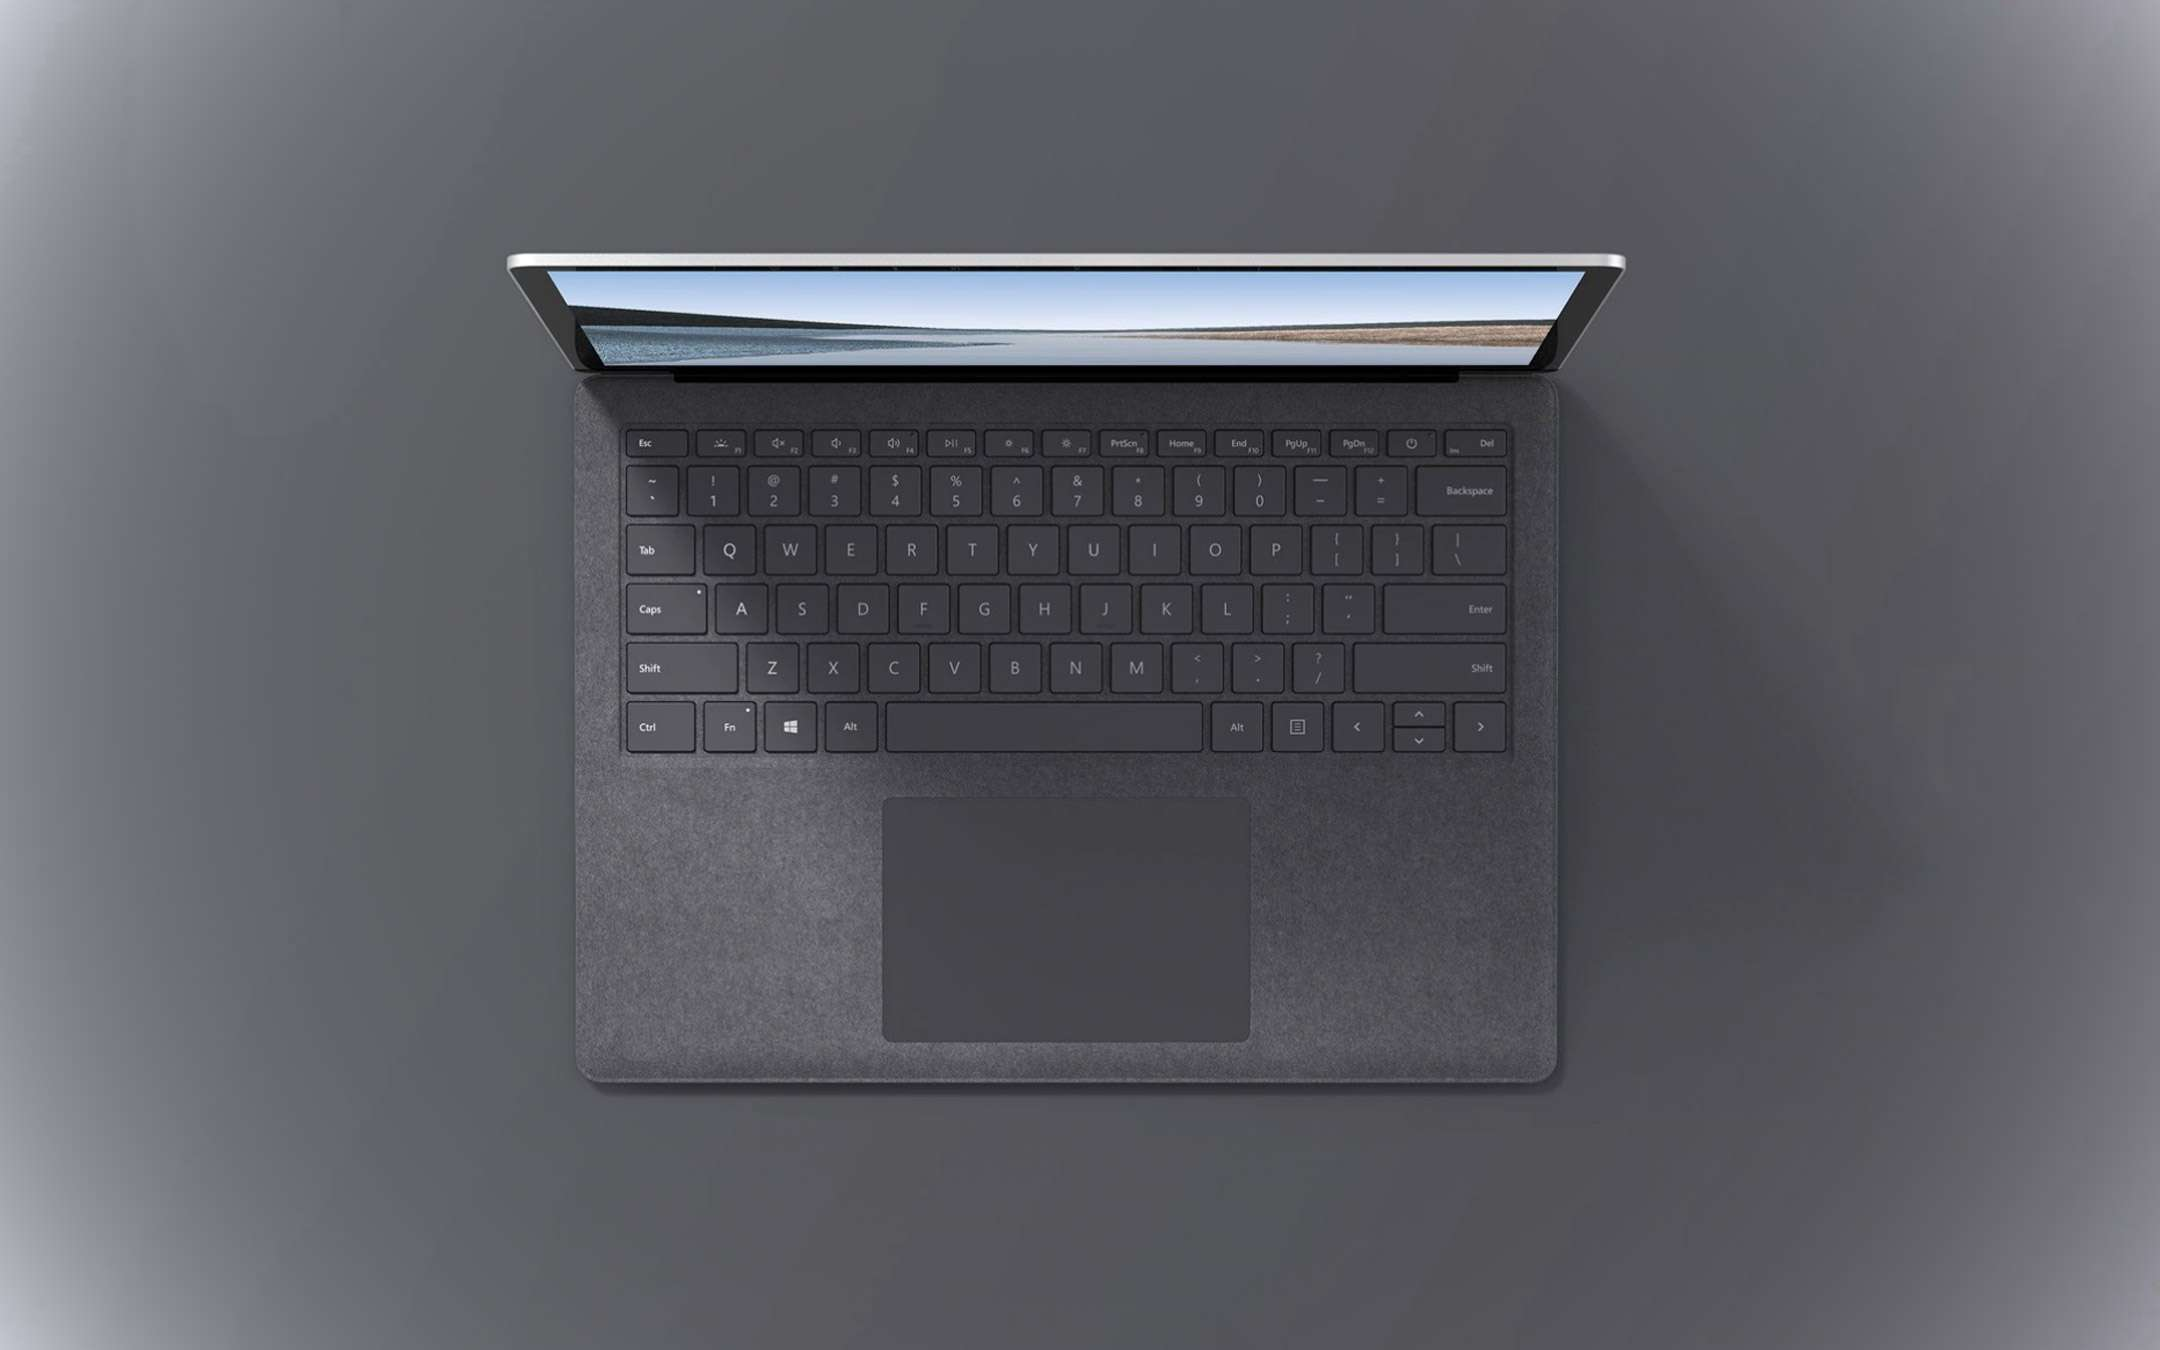 Surface Laptop 3 for 899 euros instead of 1169 euros